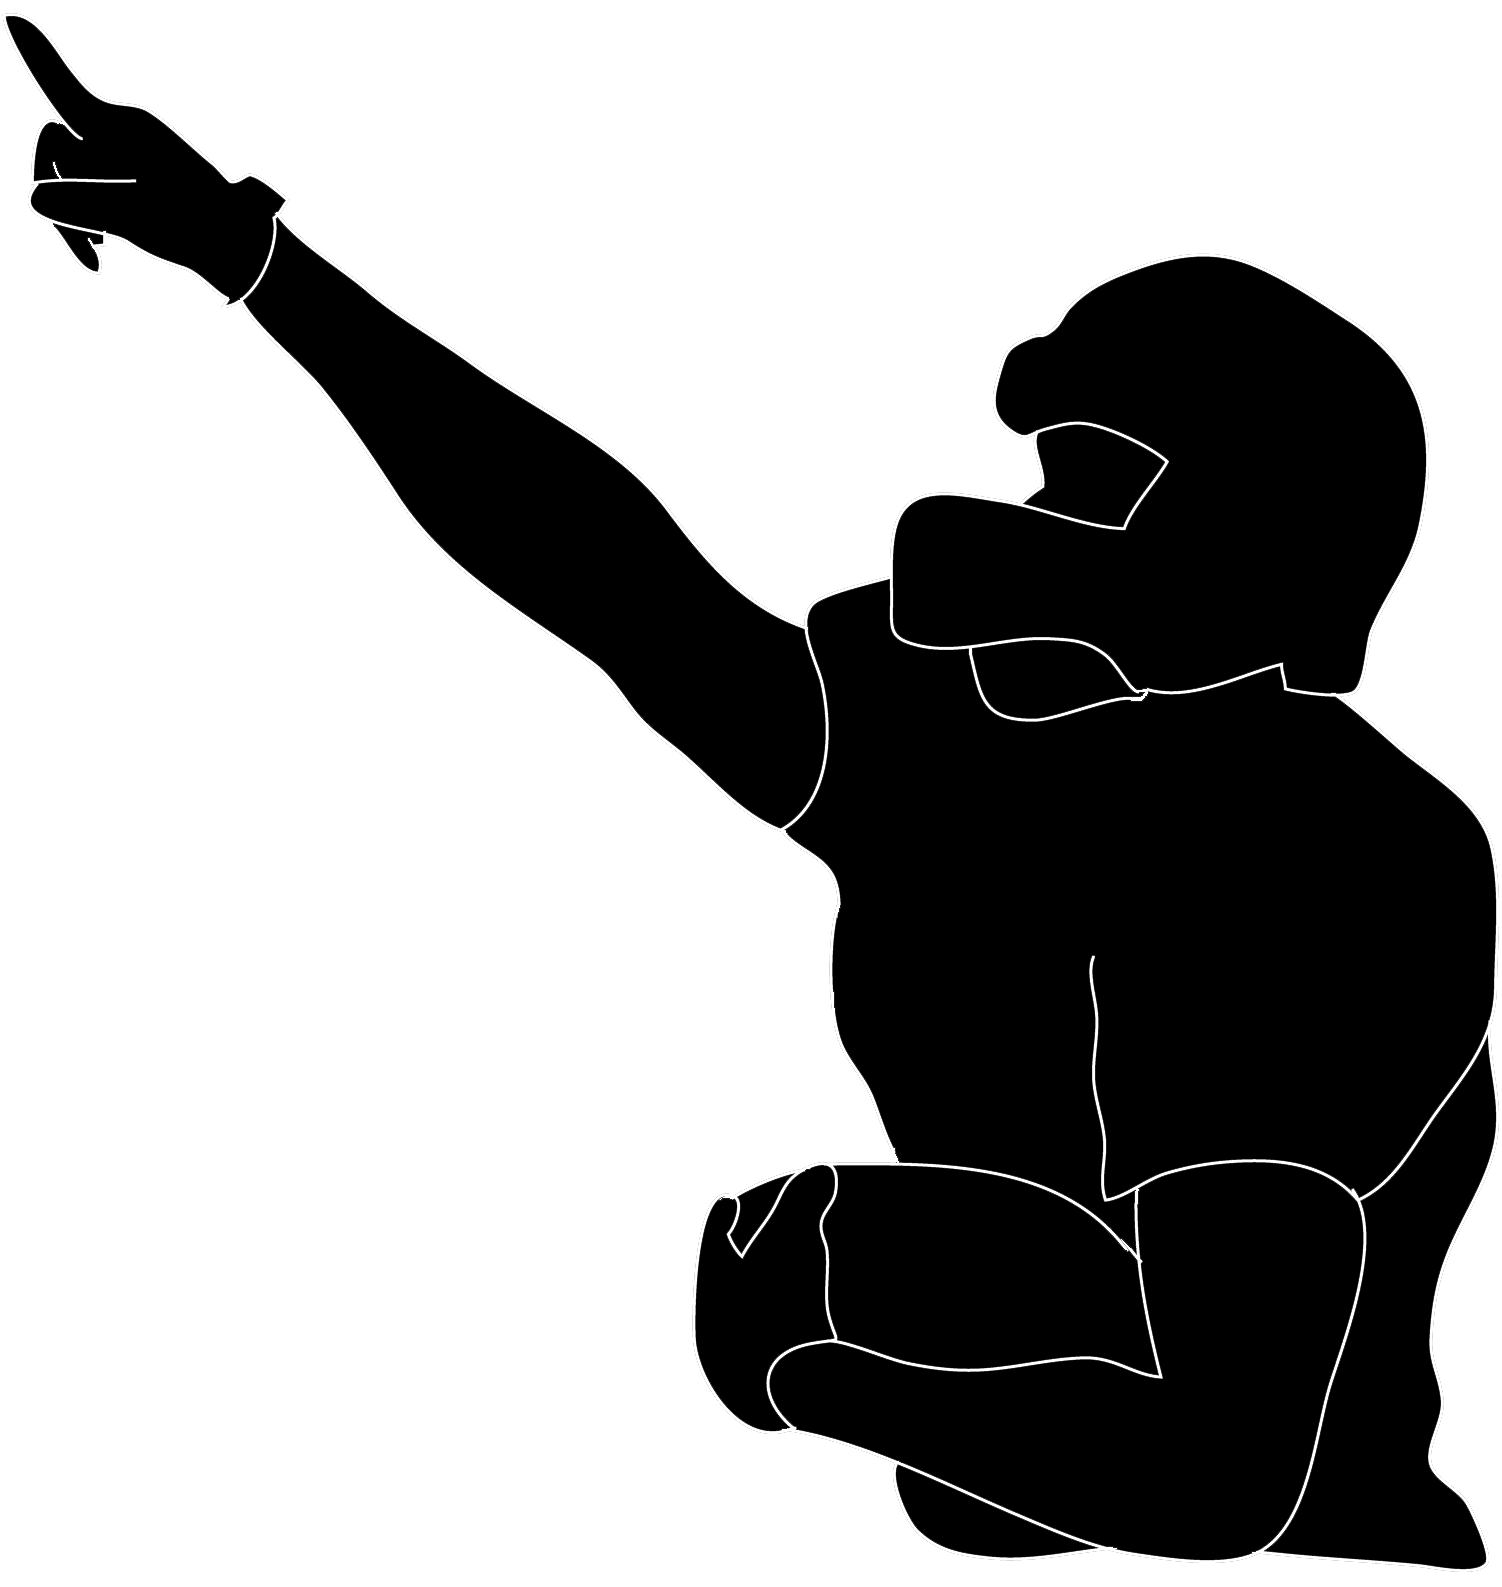 Football shadow clipart clip art American Silhouette at GetDrawings.com | Free for personal use ... clip art